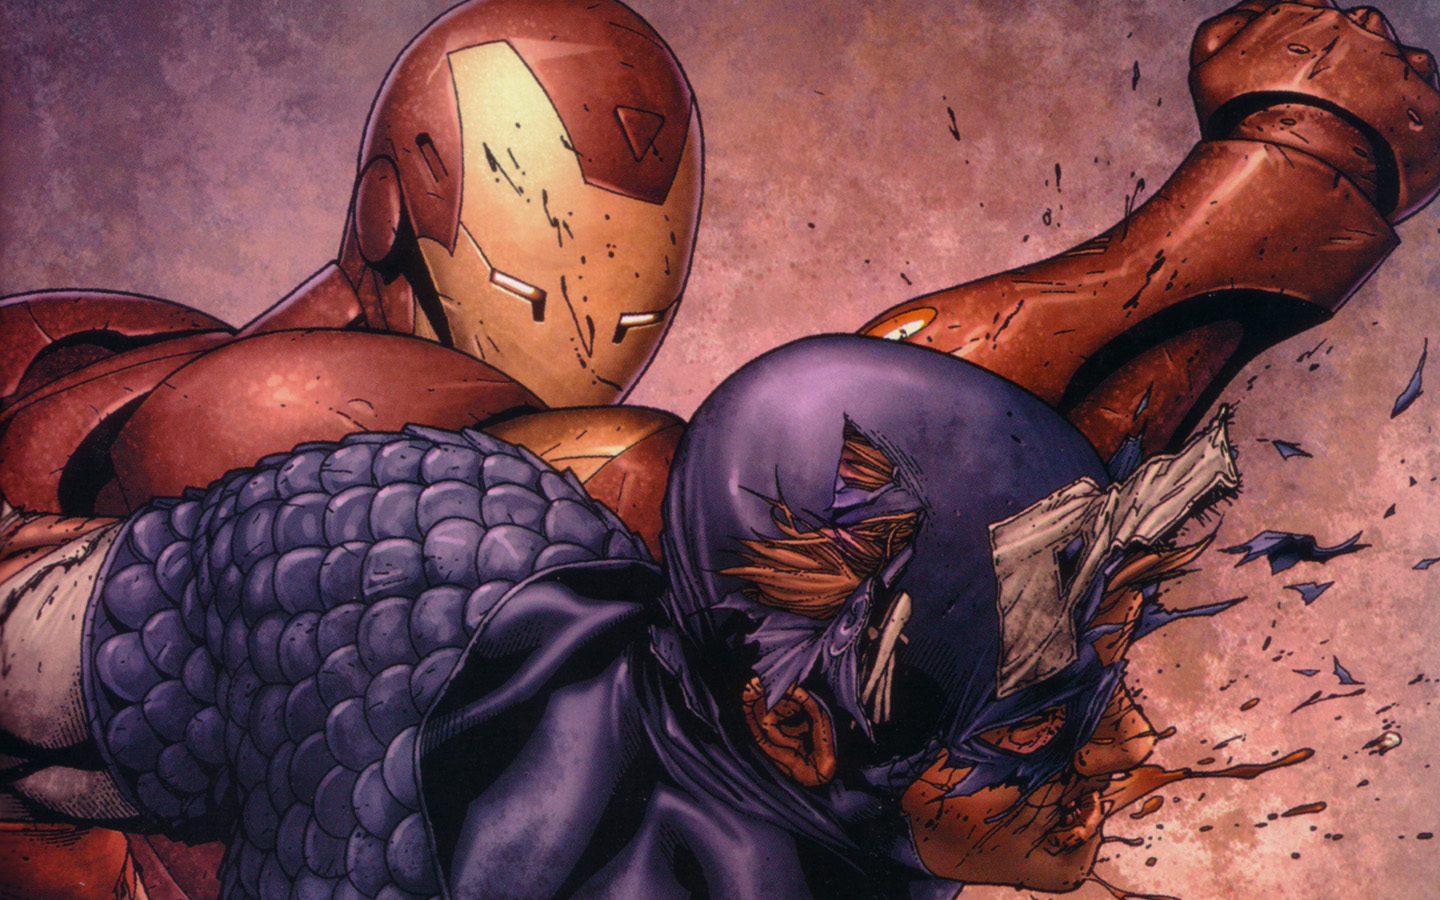 Marvel Comic's wallpapers. Posted by epicwallpapersandart.blogspot at